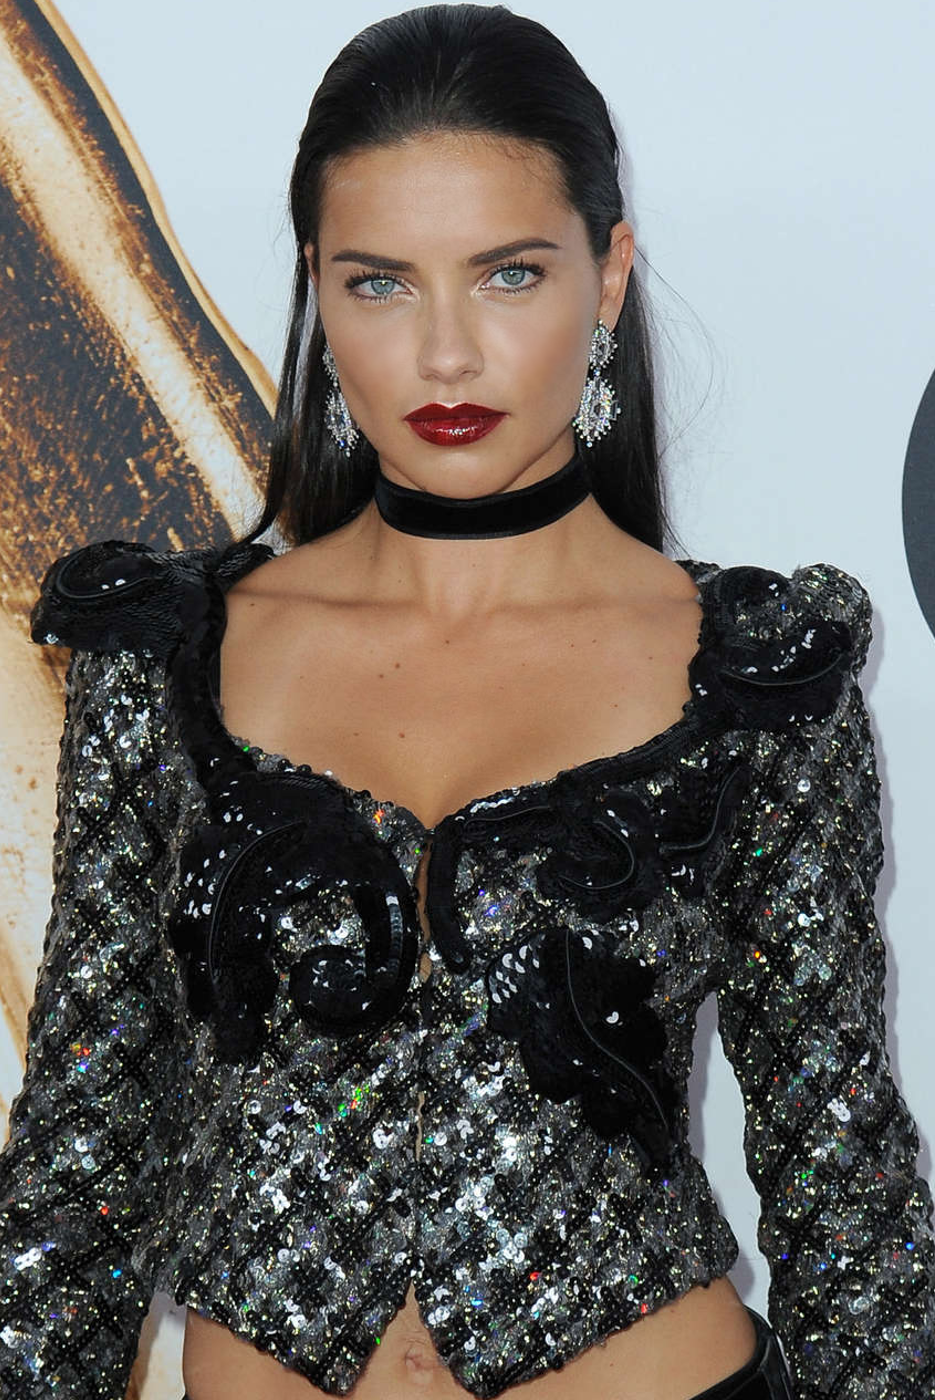 MODEL ADRIANA LIMA - GLAMOUR AT THE 2016 CFDA AWARDS - 2016 CFDA Awards Adriana Lima, Glamour, CFDA Awards, Awards, Model